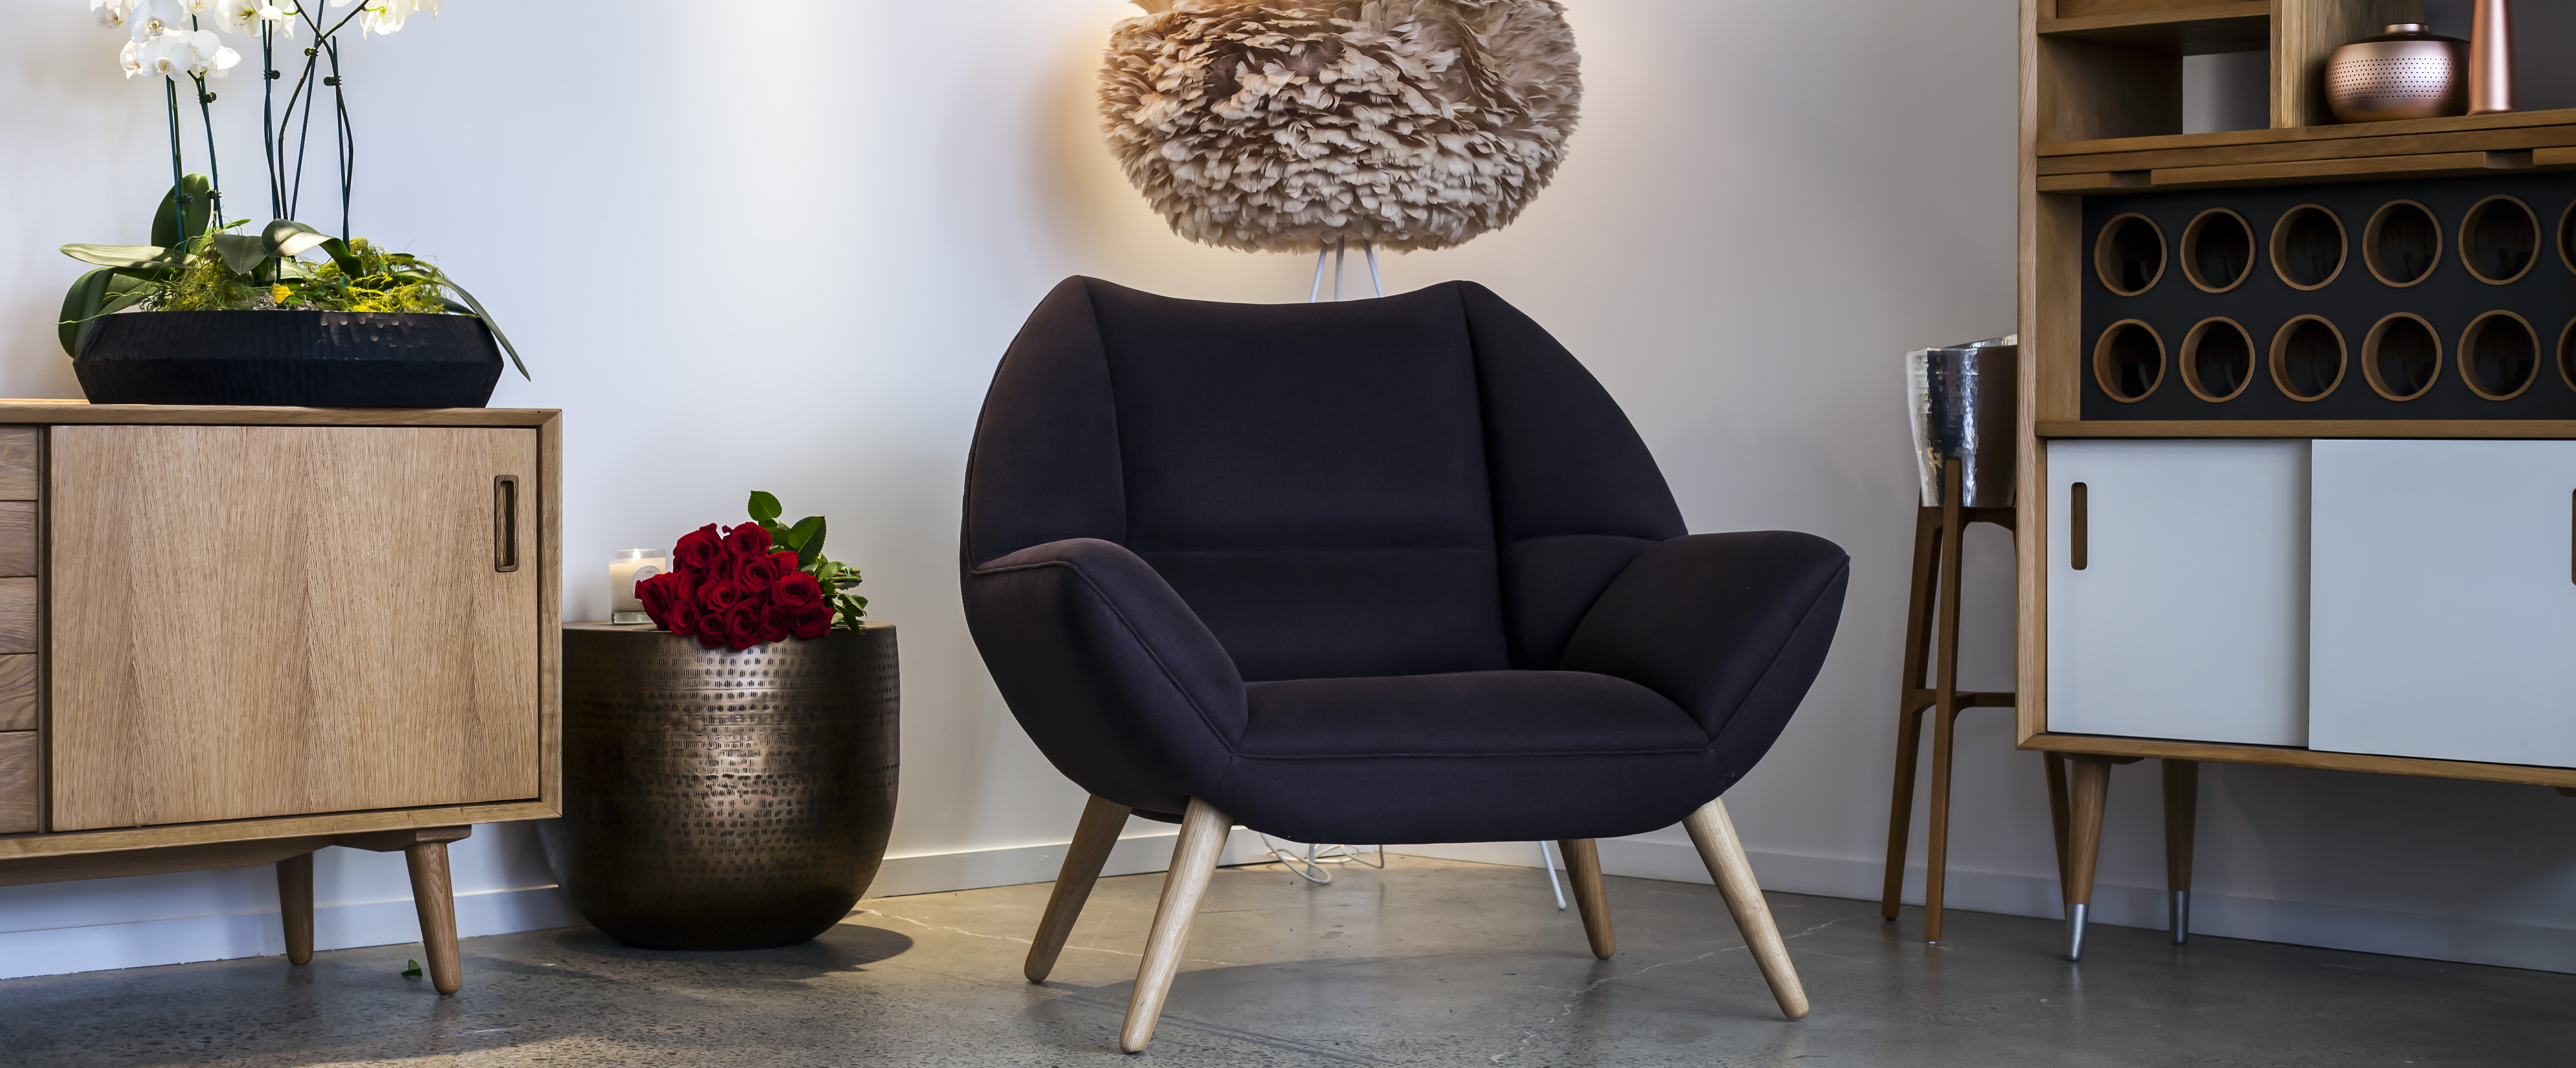 mei chair and stool